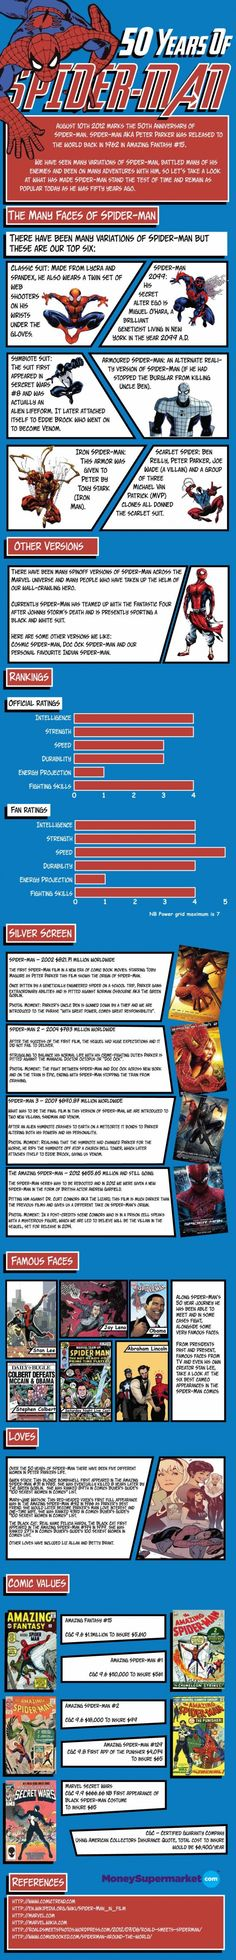 50 Years of Spider-man Infographic. Everything you need to know explaining why it's complicated being Peter Parker.